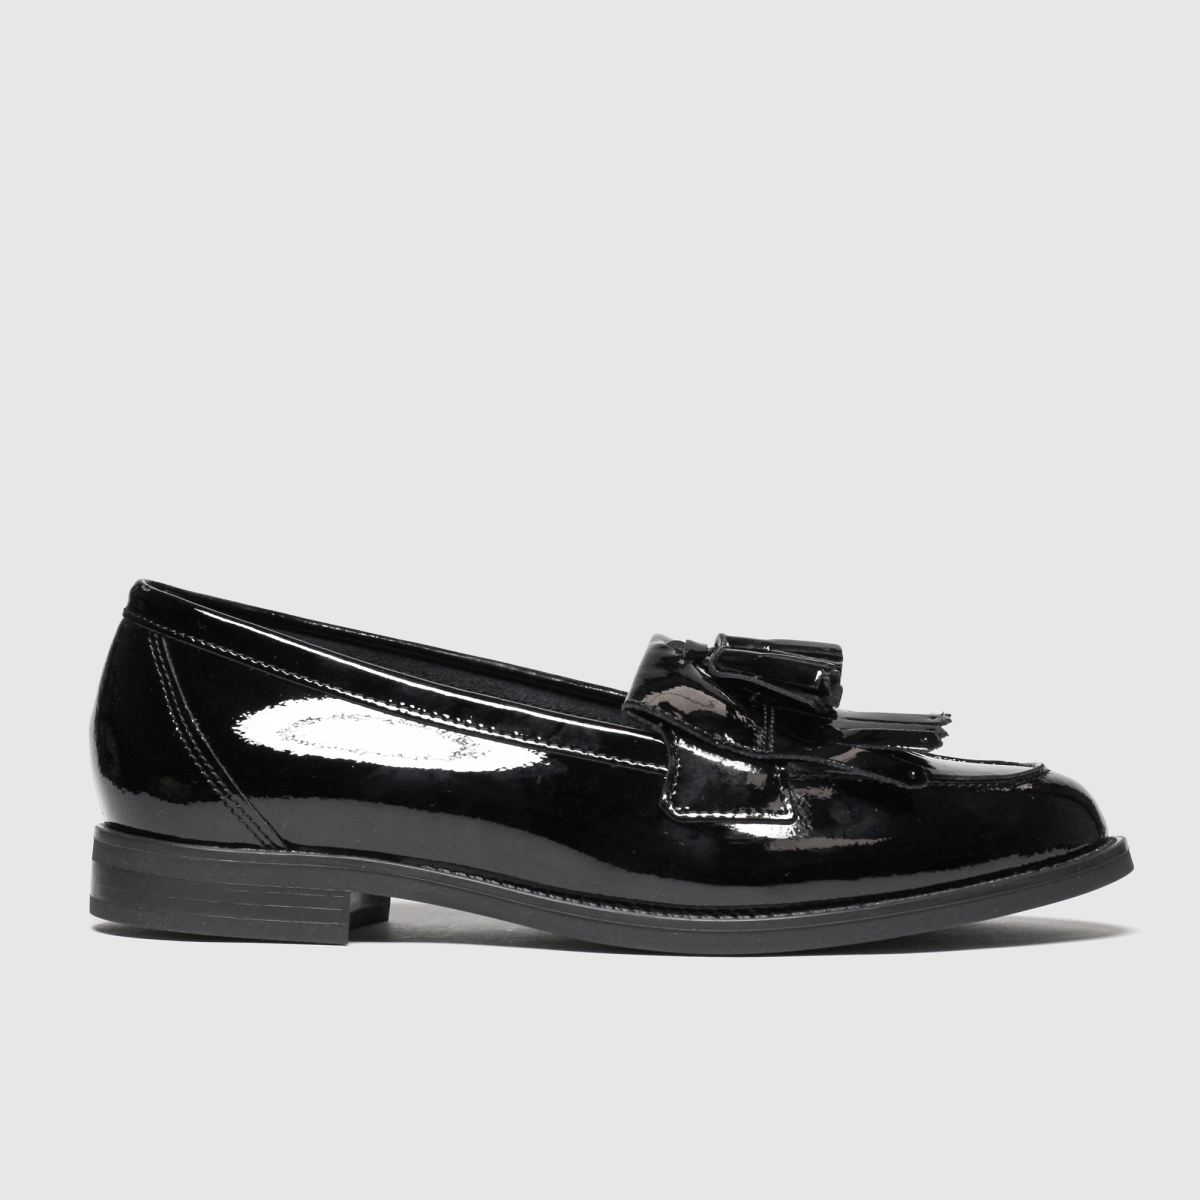 schuh Schuh Black Compass Leather Loafer Flat Shoes